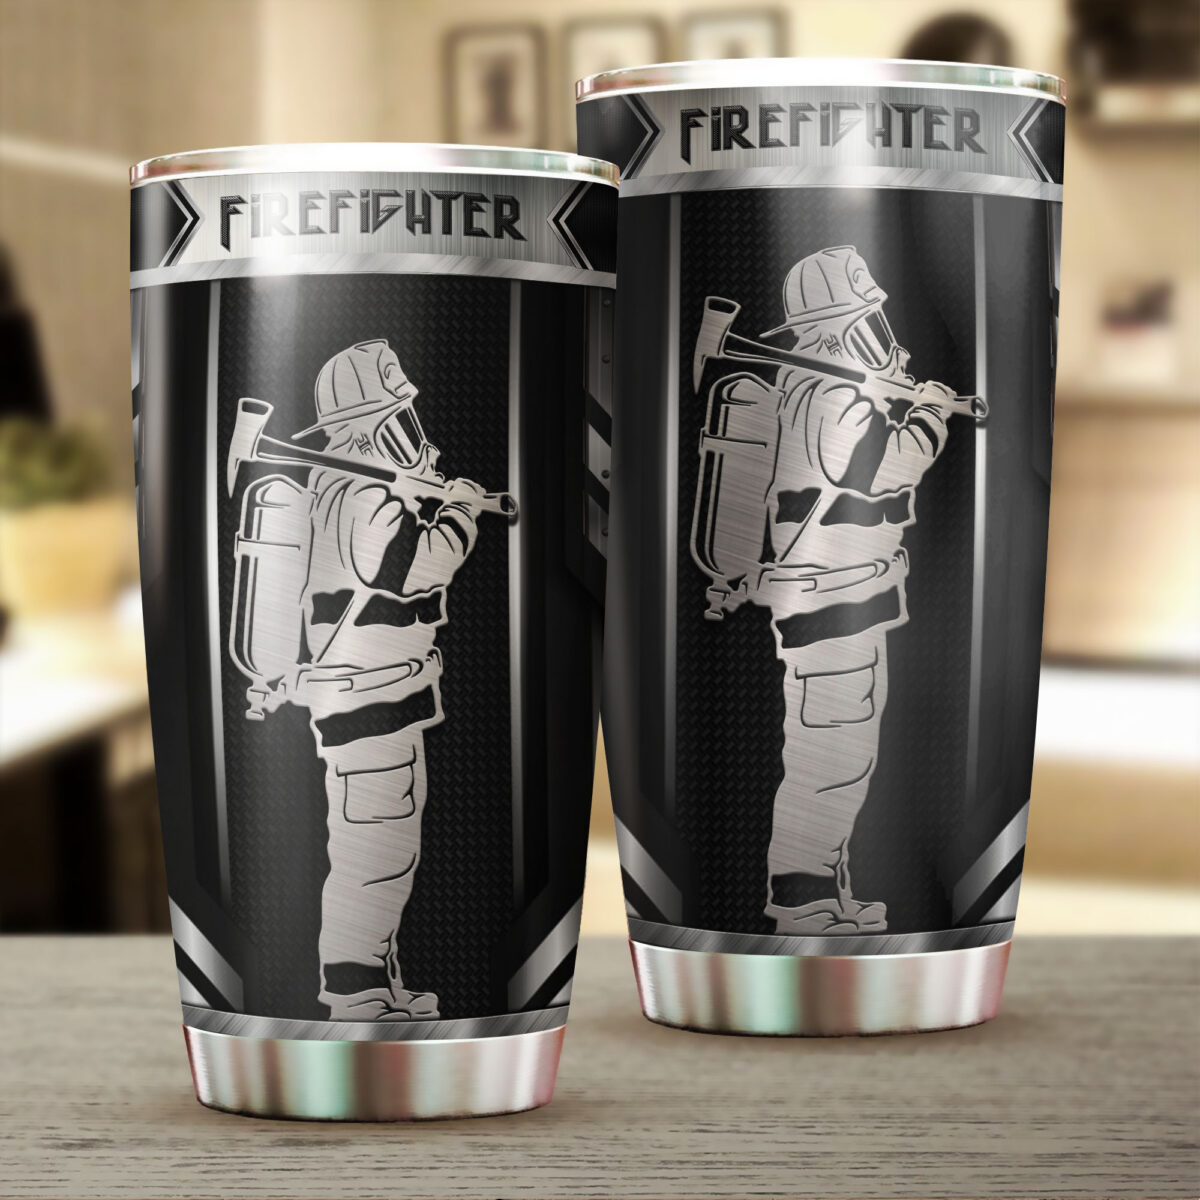 firefighter metal all over print stainless steel tumbler 2